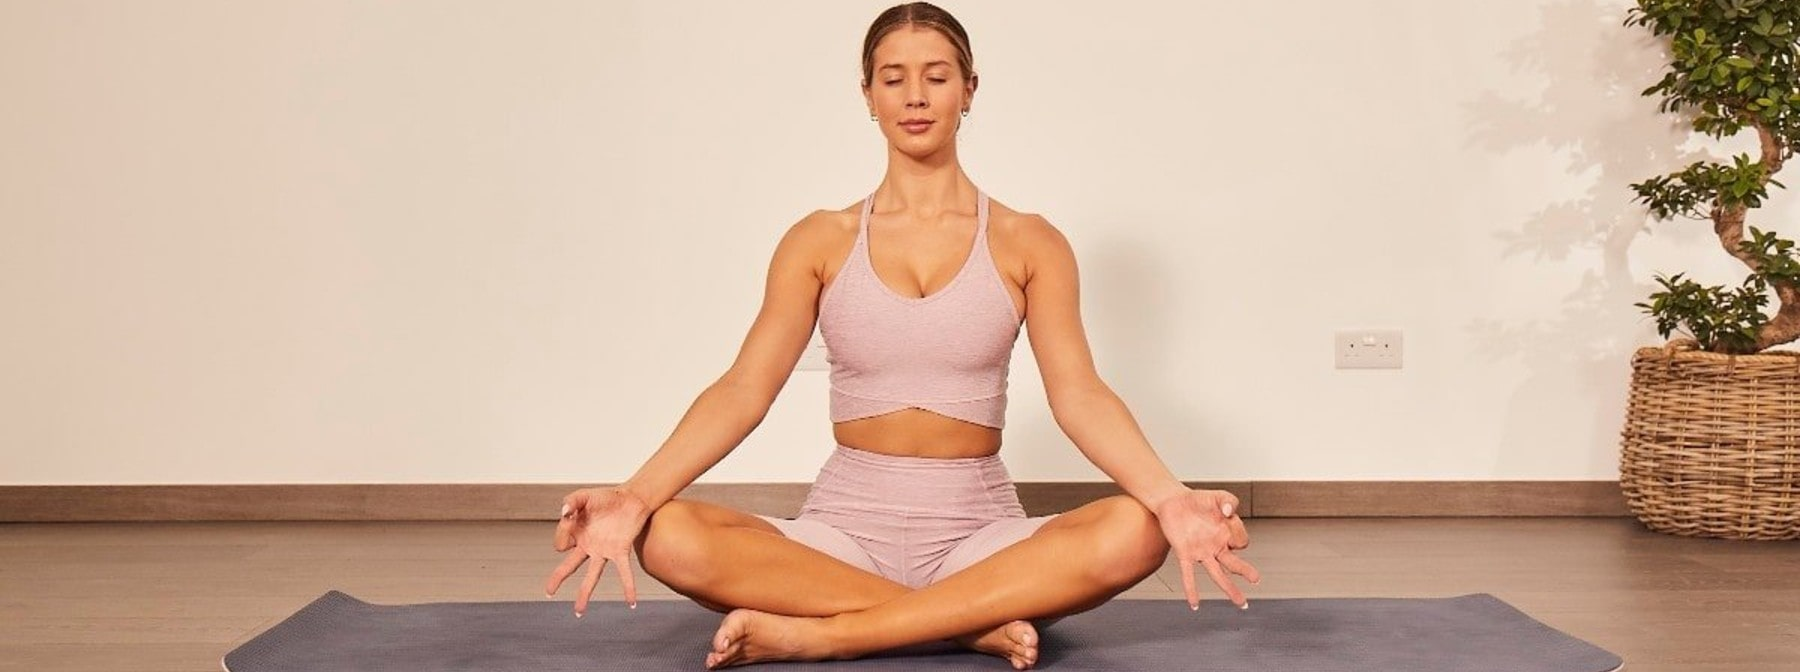 Exercise Or Mindfulness For Better Mental Health? | Cambridge Study Has The Answers